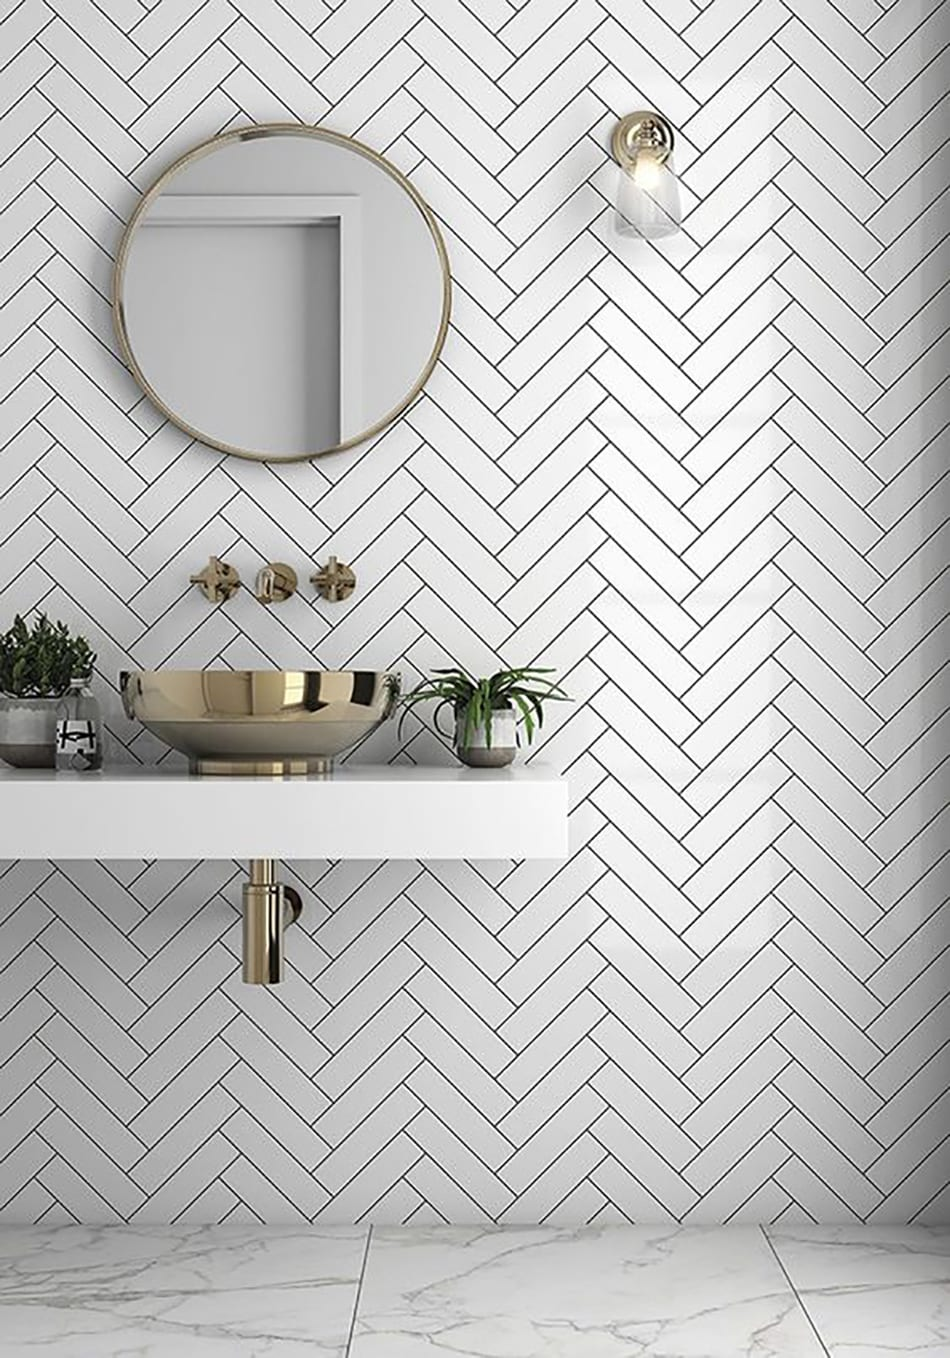 Chevron-pattern-1 Top 10 Outdated Bathroom Design Trends to Avoid in 2021